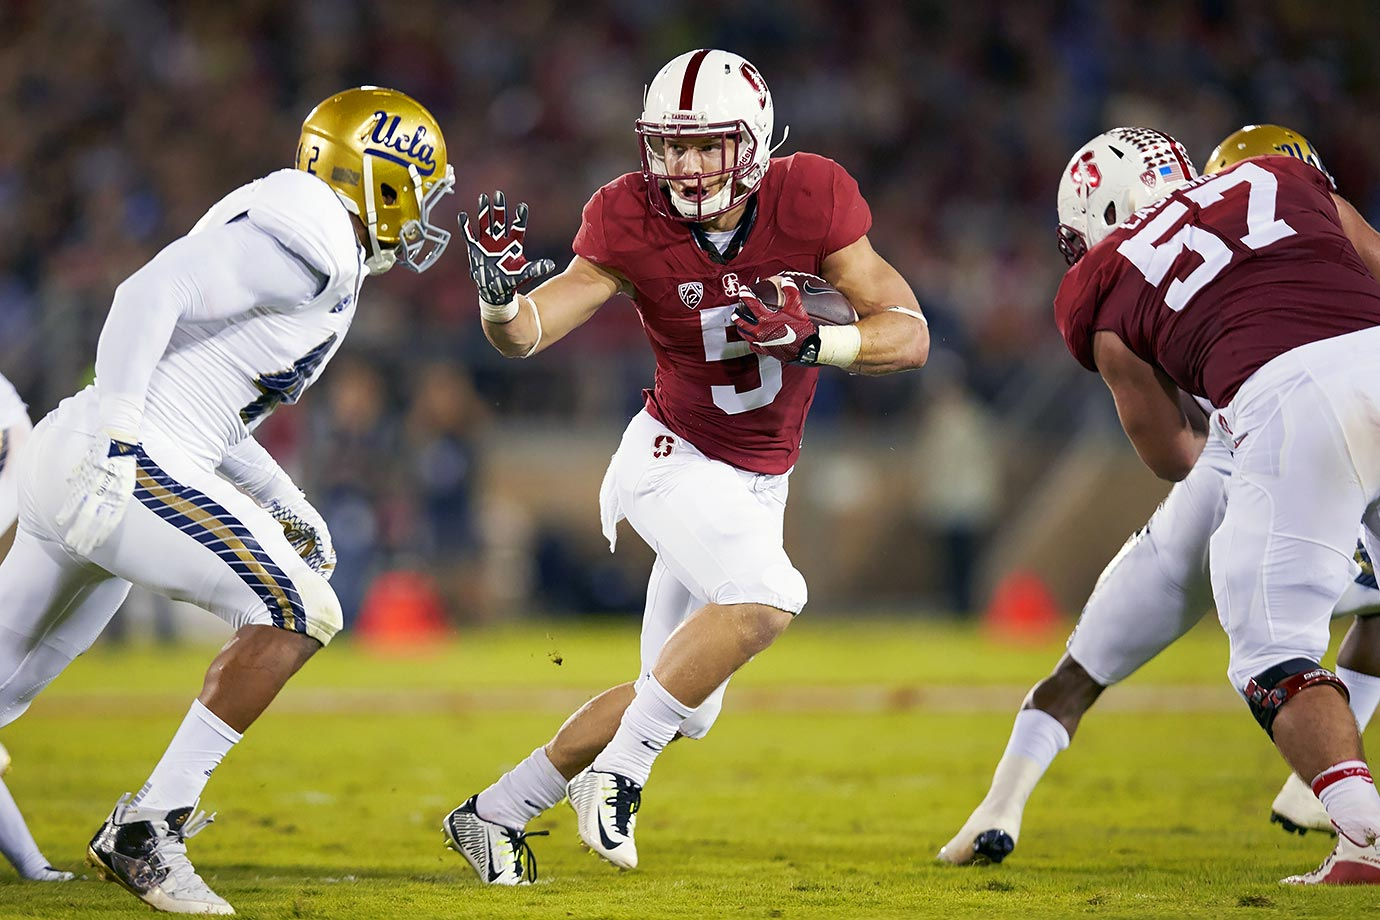 McCaffrey had one of the best seasons in the history of college football in 2015, finishing with a record 3,864 all-purpose yards, including over 2,000 rushing yards and 1,000 return yards. He finished second in Heisman voting last year, giving him some unfinished business for 2016.